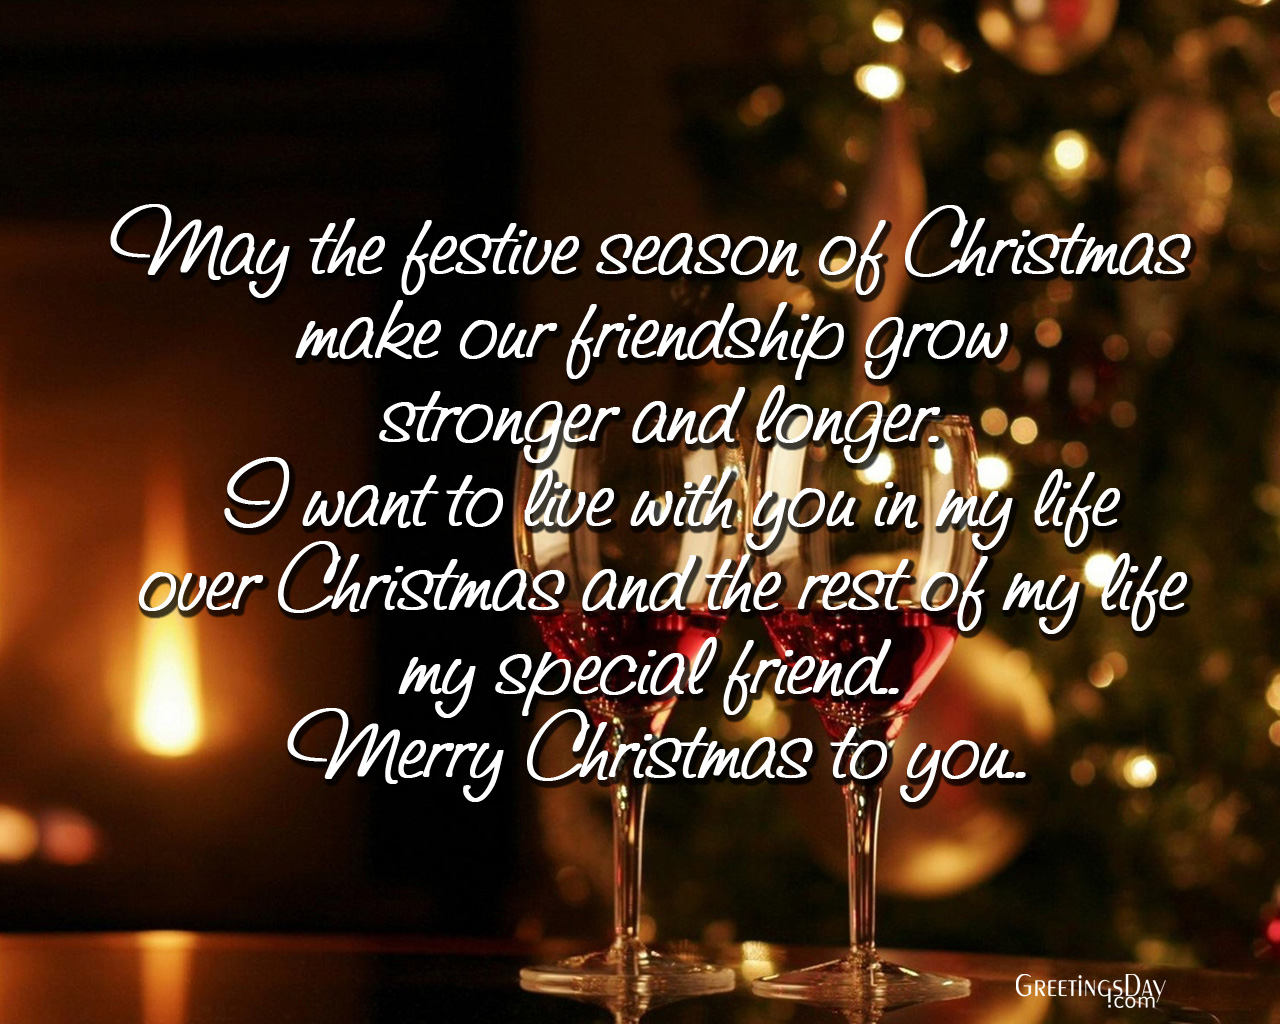 Christmas Quotes: 20 Christmas Greeting Cards For Boyfriend, Girlfriend